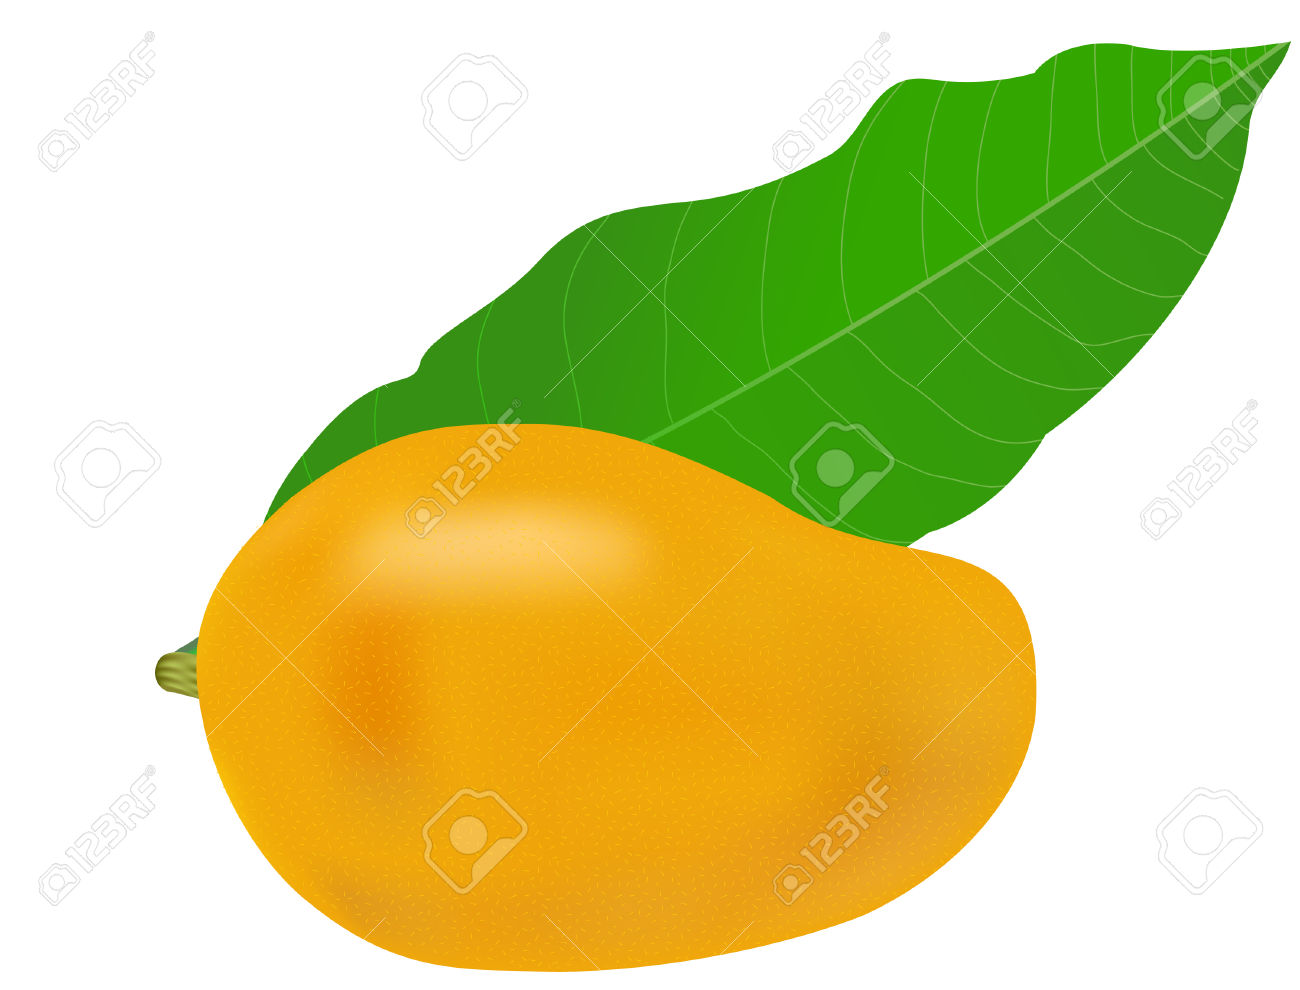 Vector Illustration Of A Mango Fruit And Leaf Royalty Free.